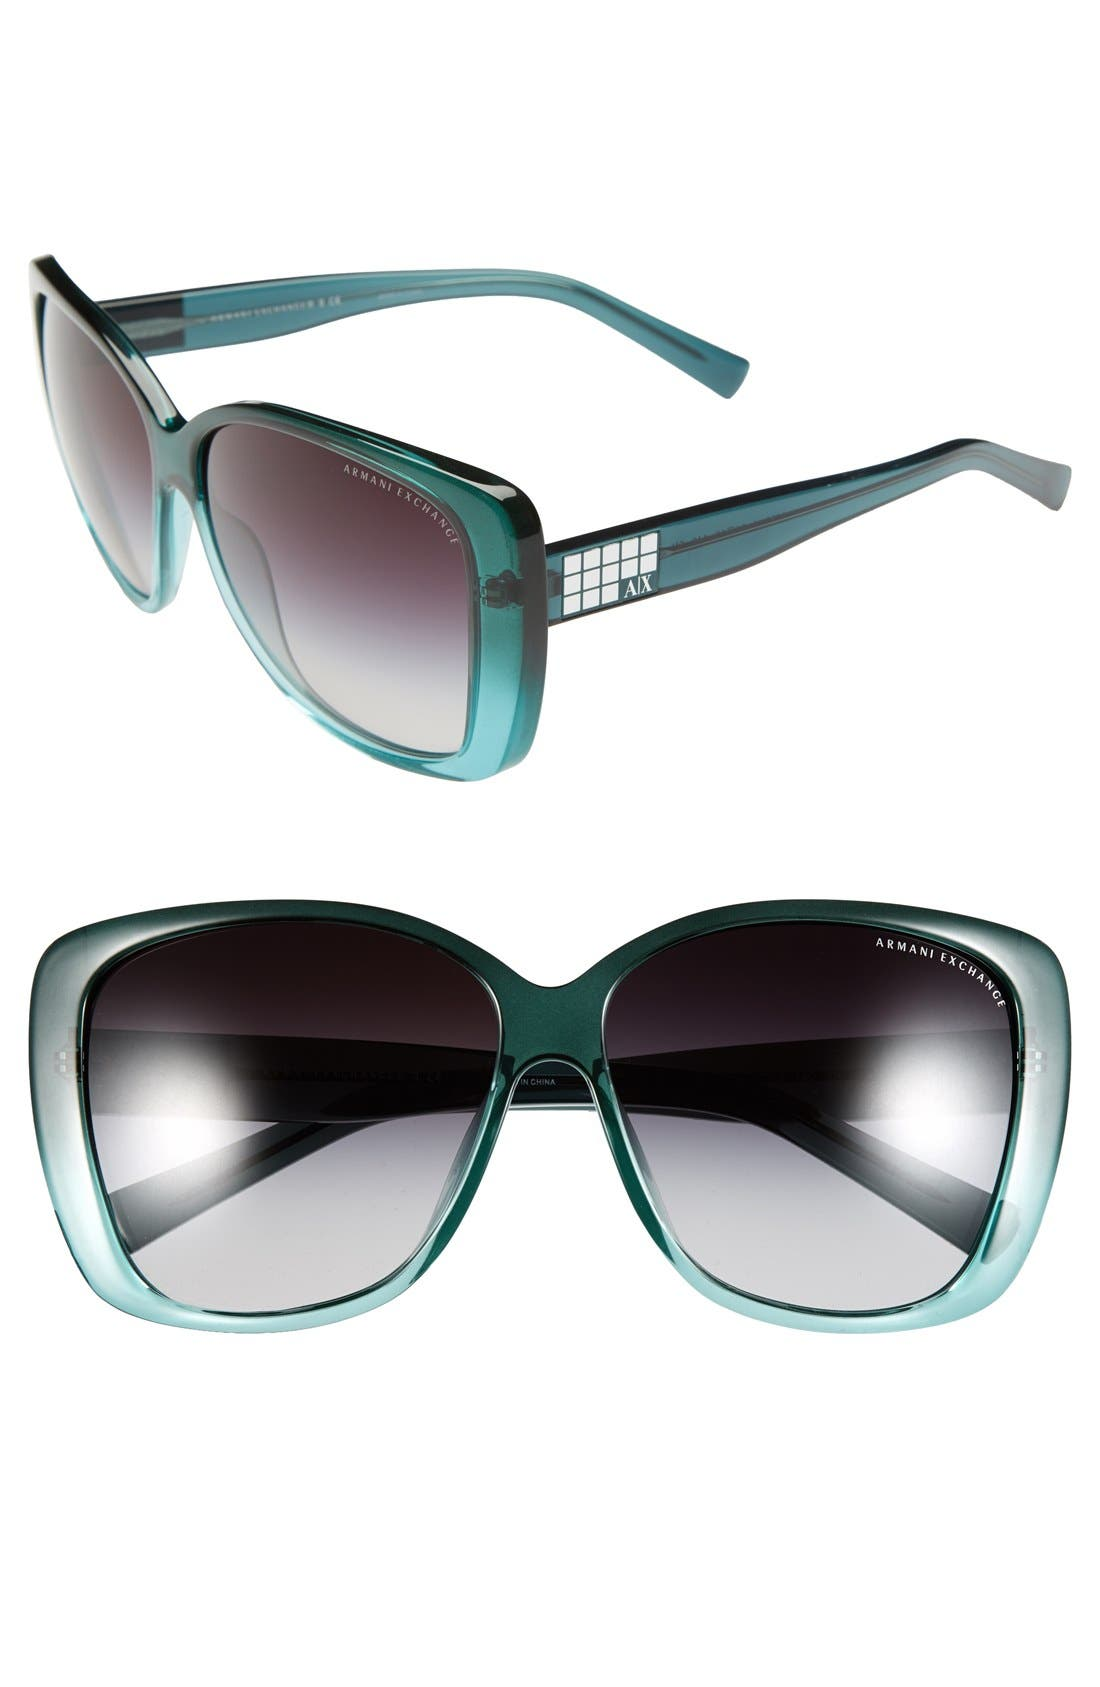 Main Image - AX Armani Exchange 'Butterfly Glam' 61mm Sunglasses